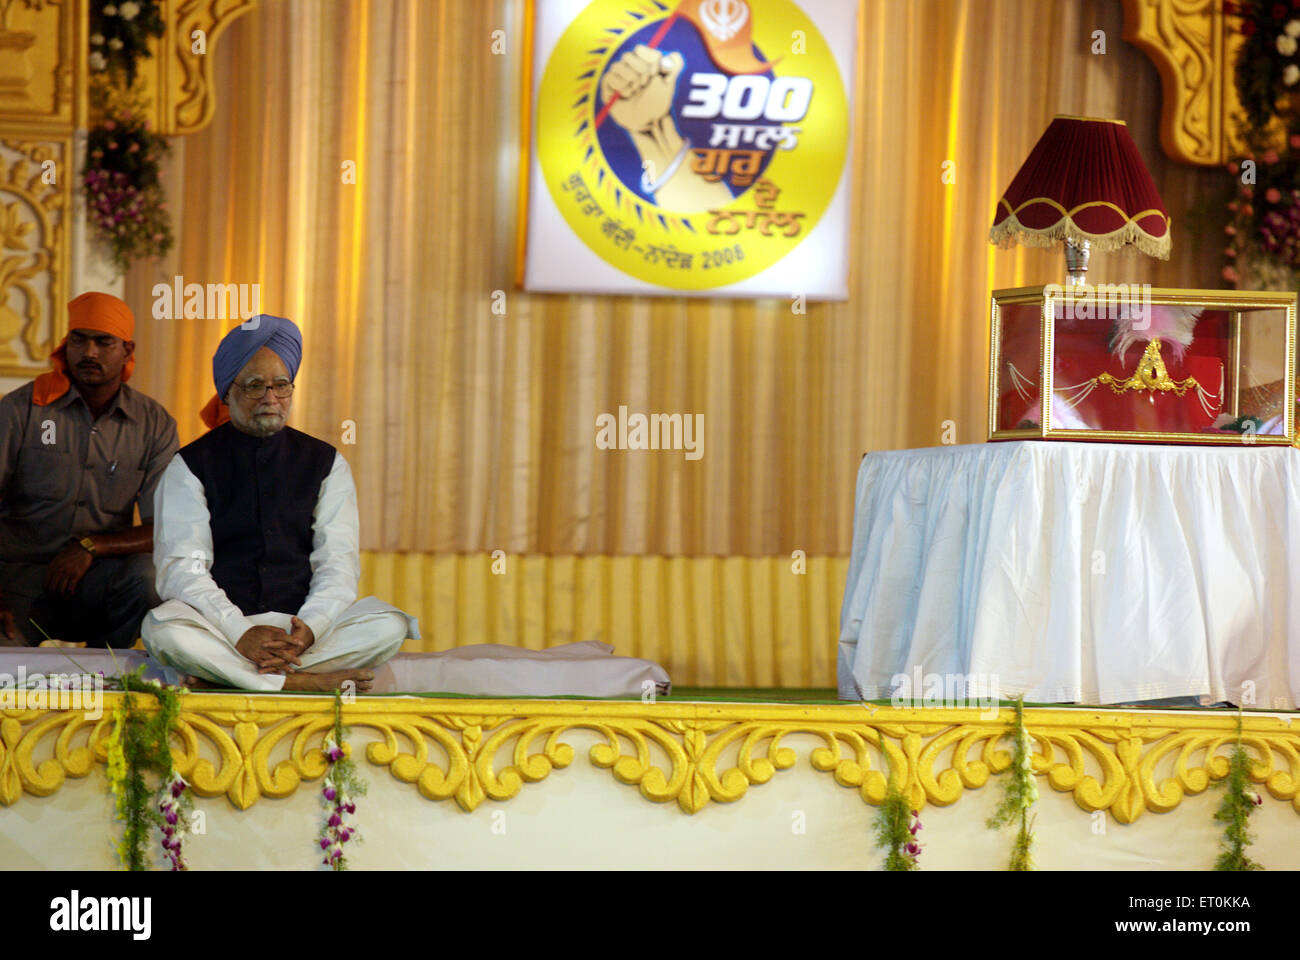 Prime minister Dr Manmohan Singh at occasion celebrated 300th year of Consecration of Guru Granth Sahib ; Nanded - Stock Image